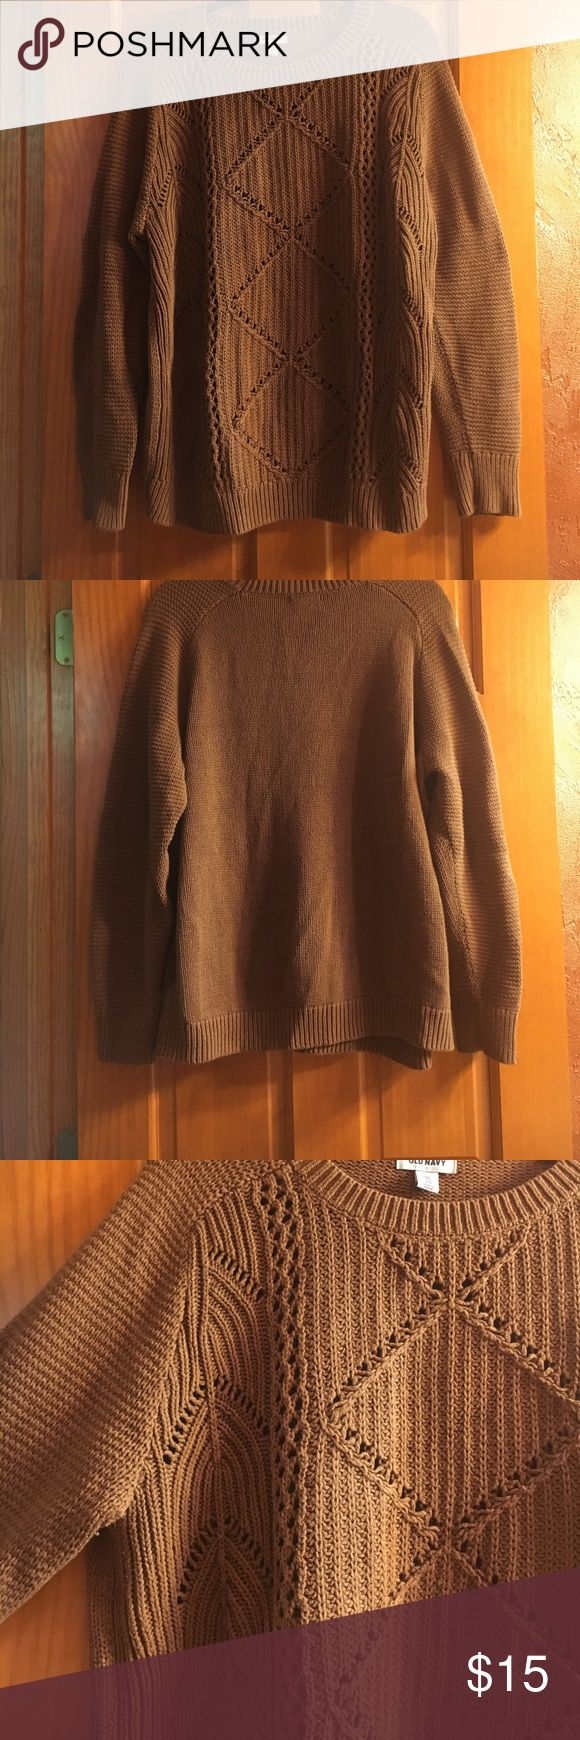 Brown old navy sweater Brown old navy sweater🍂 Size: XXL perfect for fall or winter! Great condition!! 60% cotton & 40% acrylic. Adorable woven detailing! Only worn a few times! Old Navy Sweaters Crew & Scoop Necks